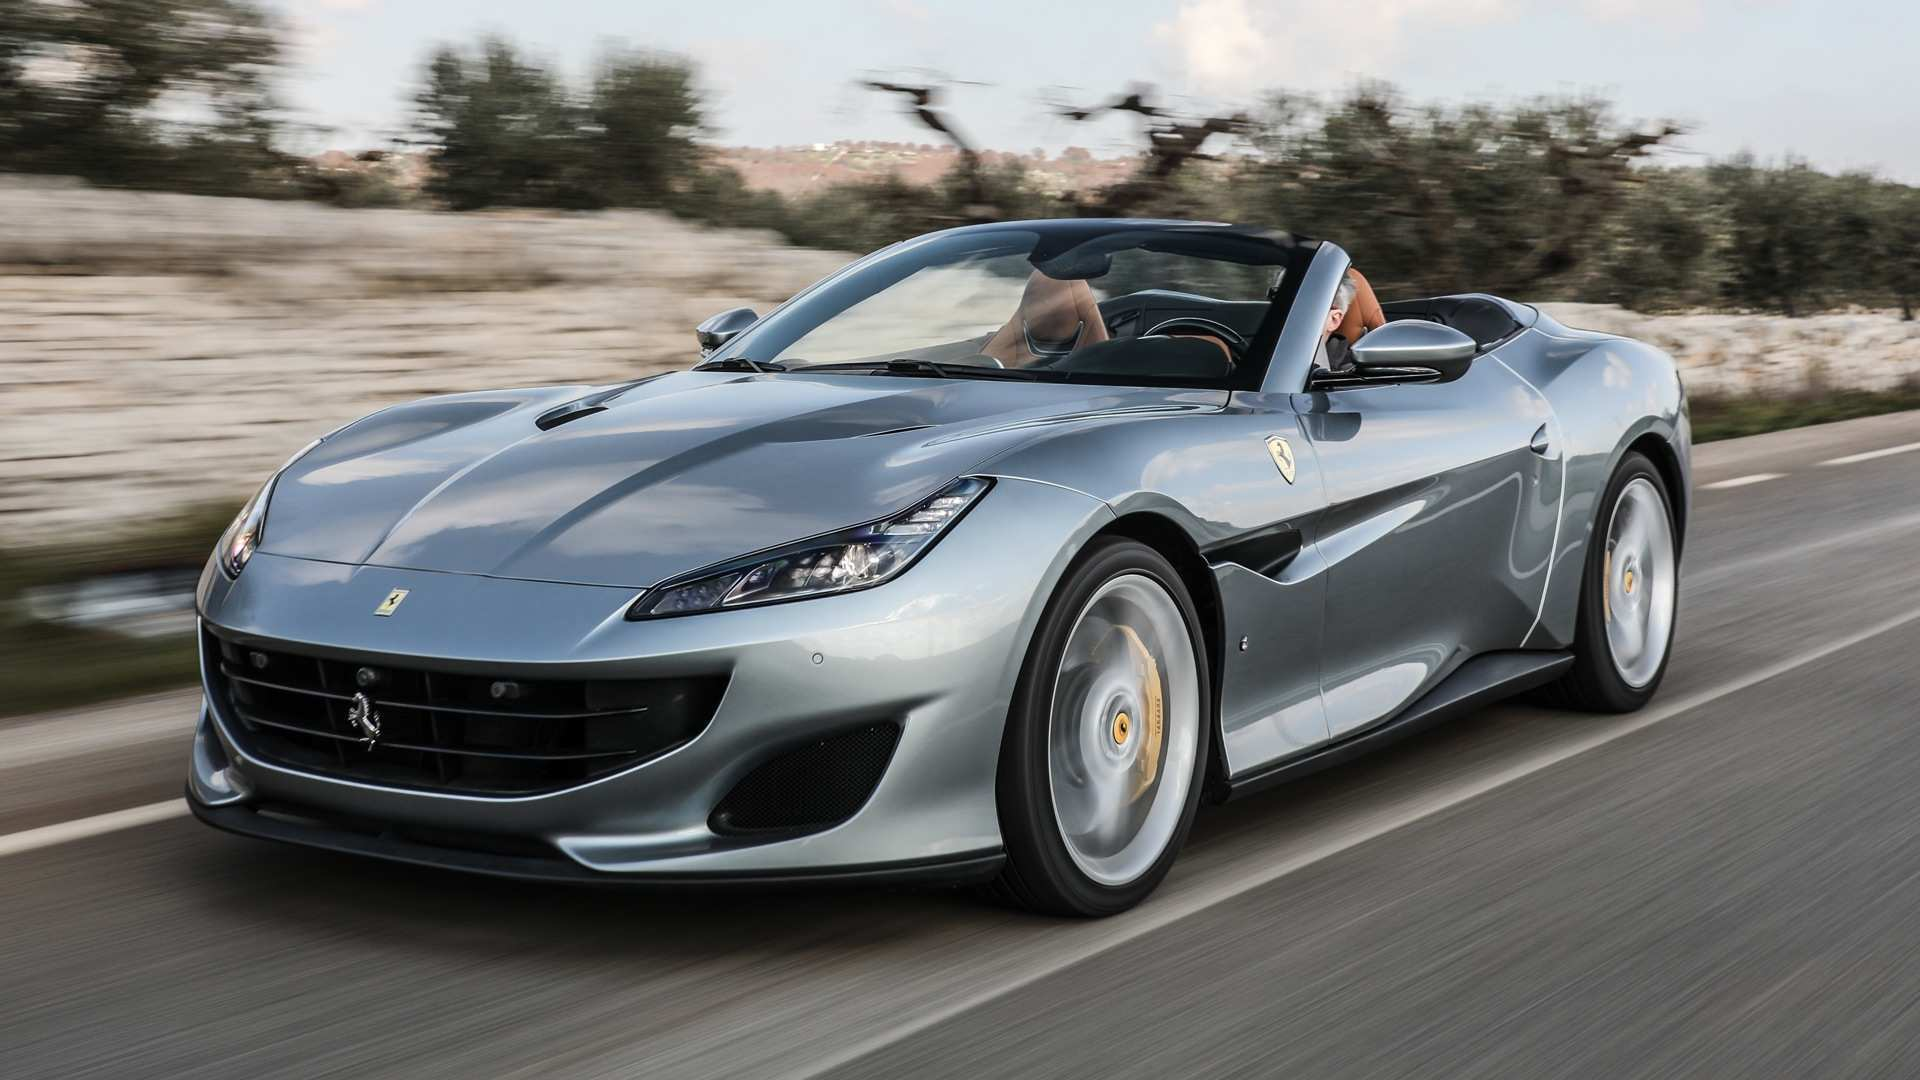 51 Great 2019 Ferrari Portofino Price with 2019 Ferrari Portofino